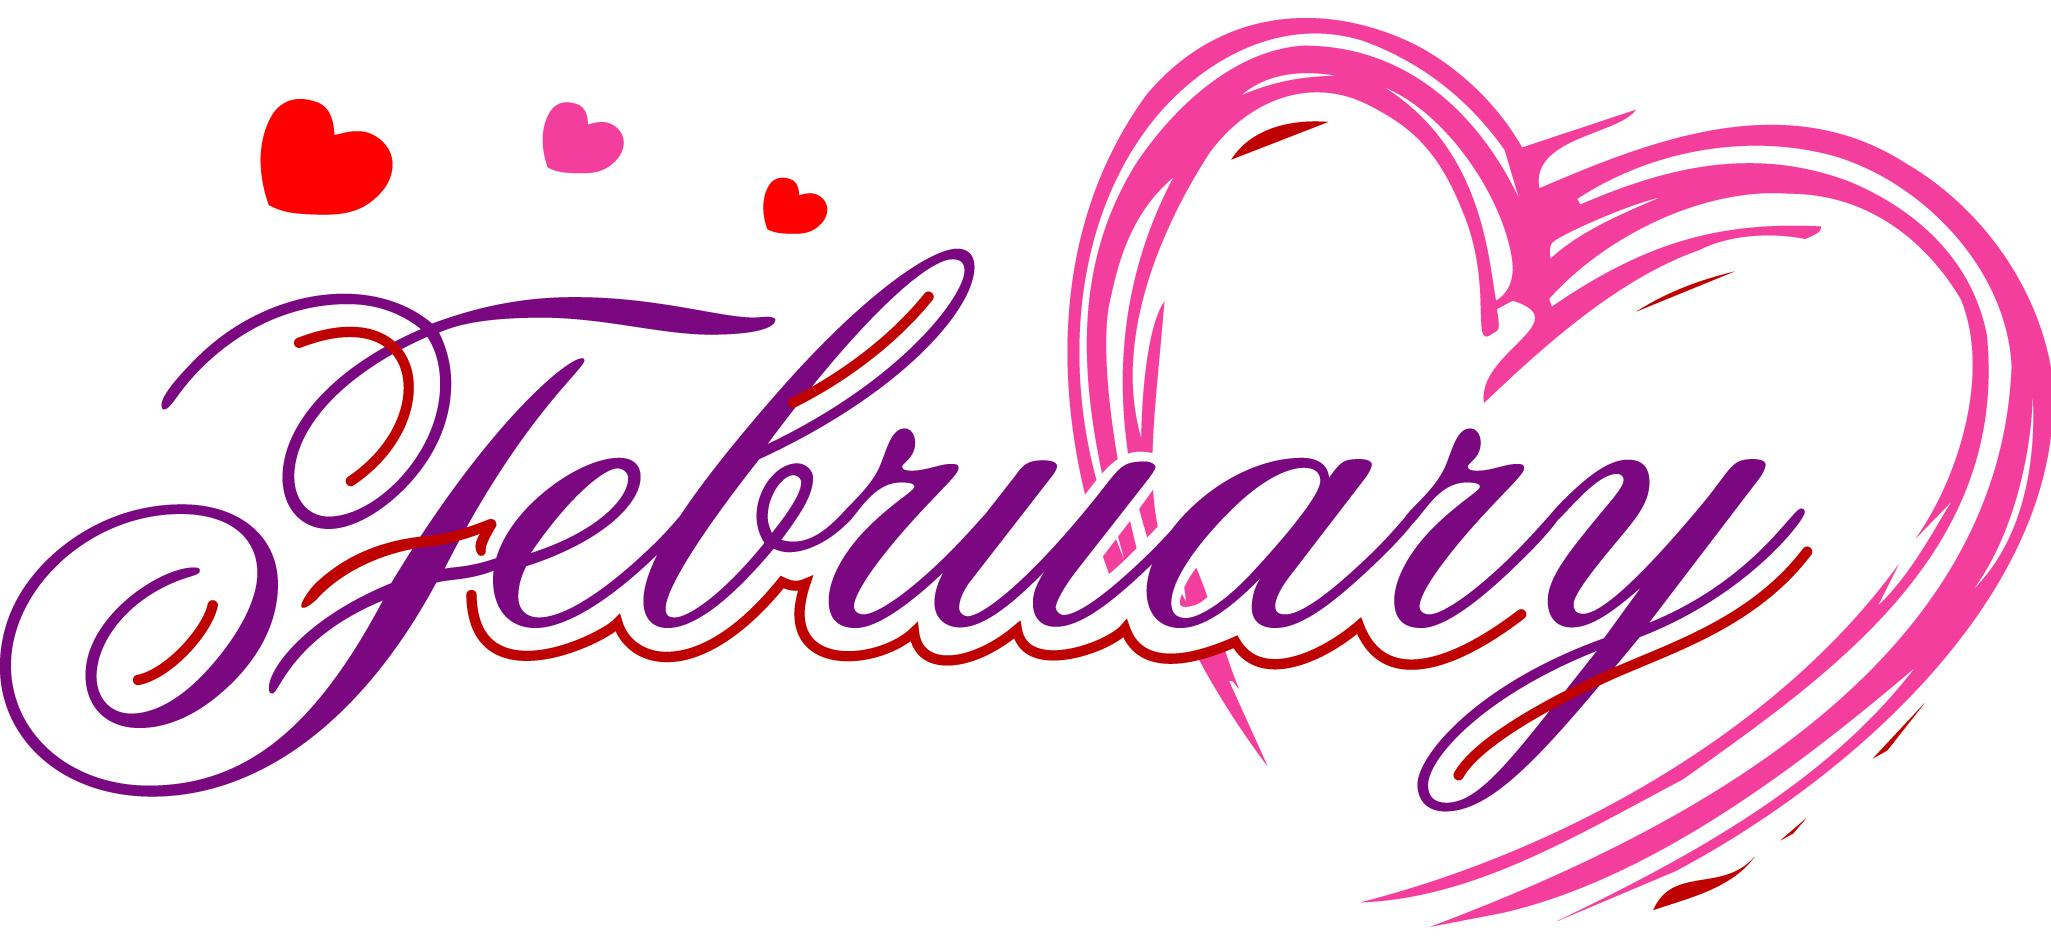 february text clipart